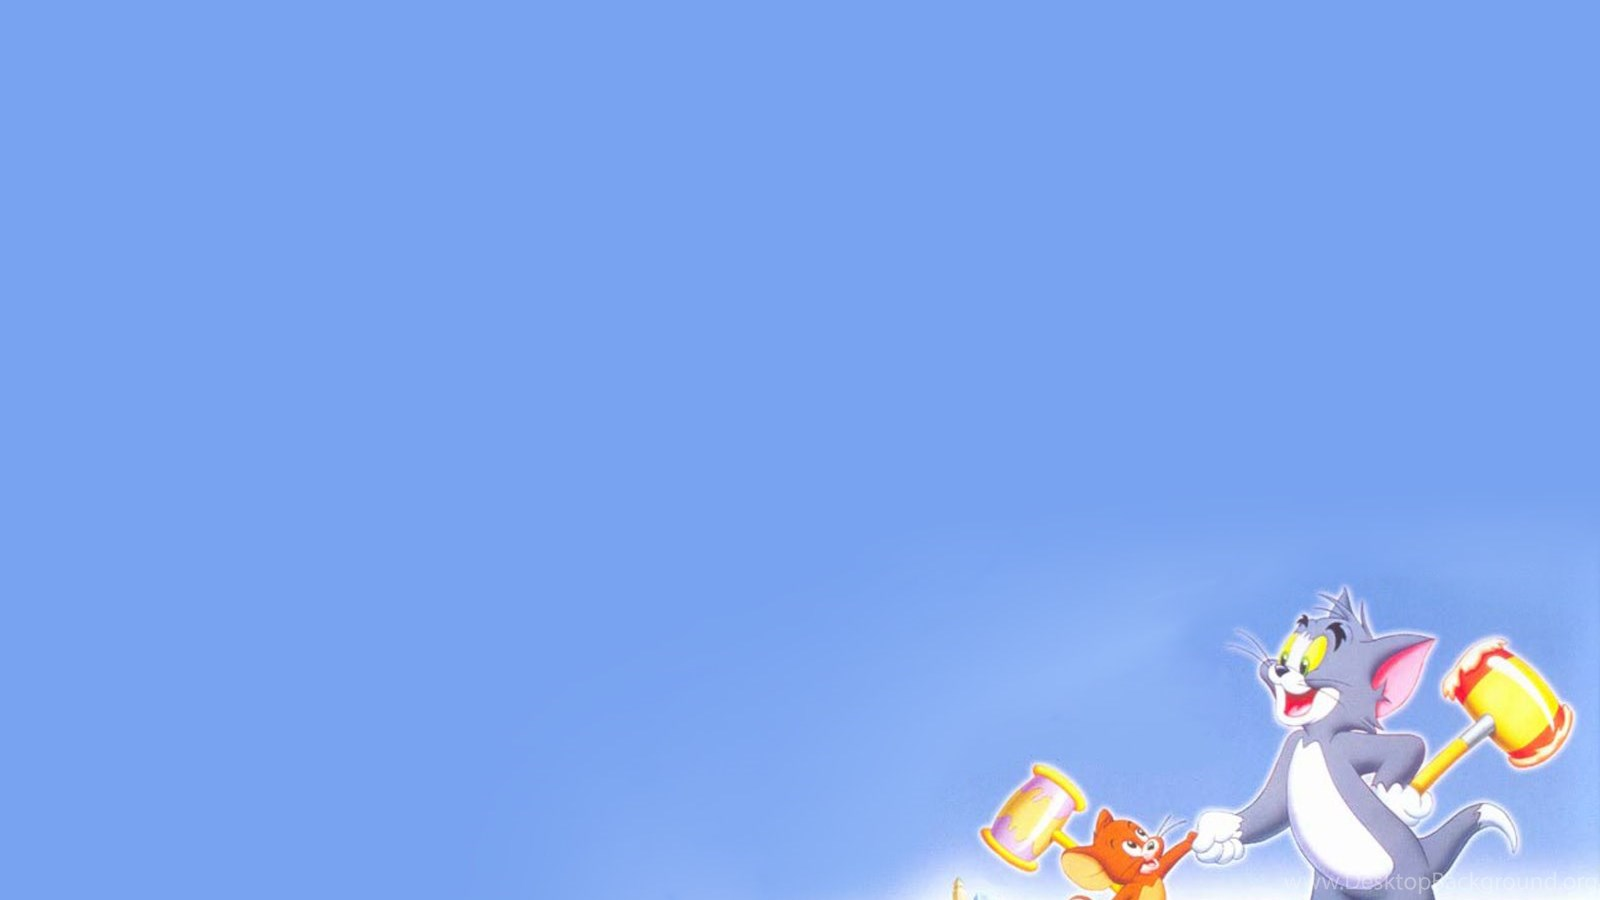 Tom and jerry background